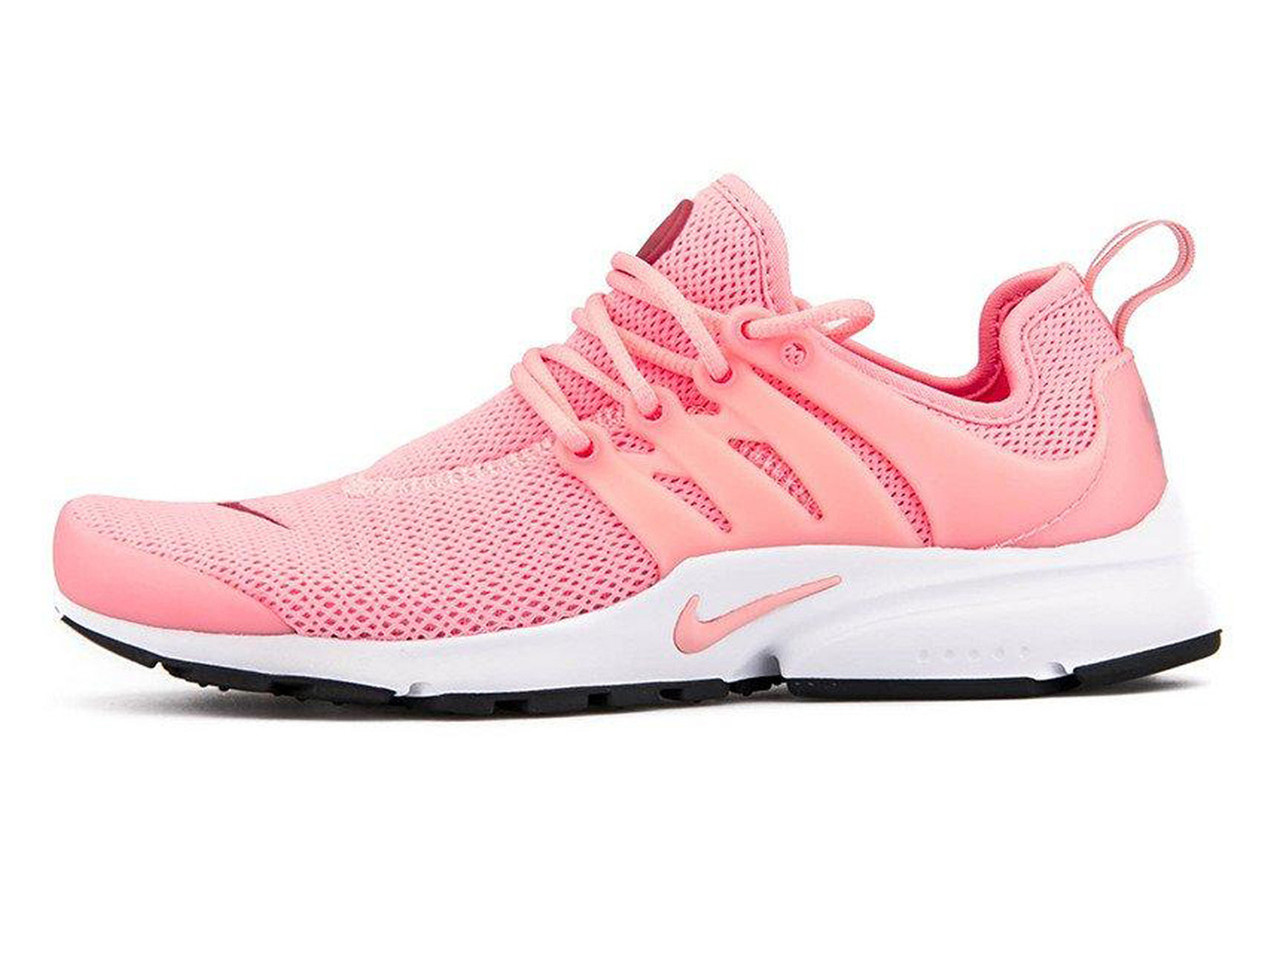 newest 72ee4 979a8 Женские кроссовки Nike Air Presto Bright Melon (Реплика ААА+)